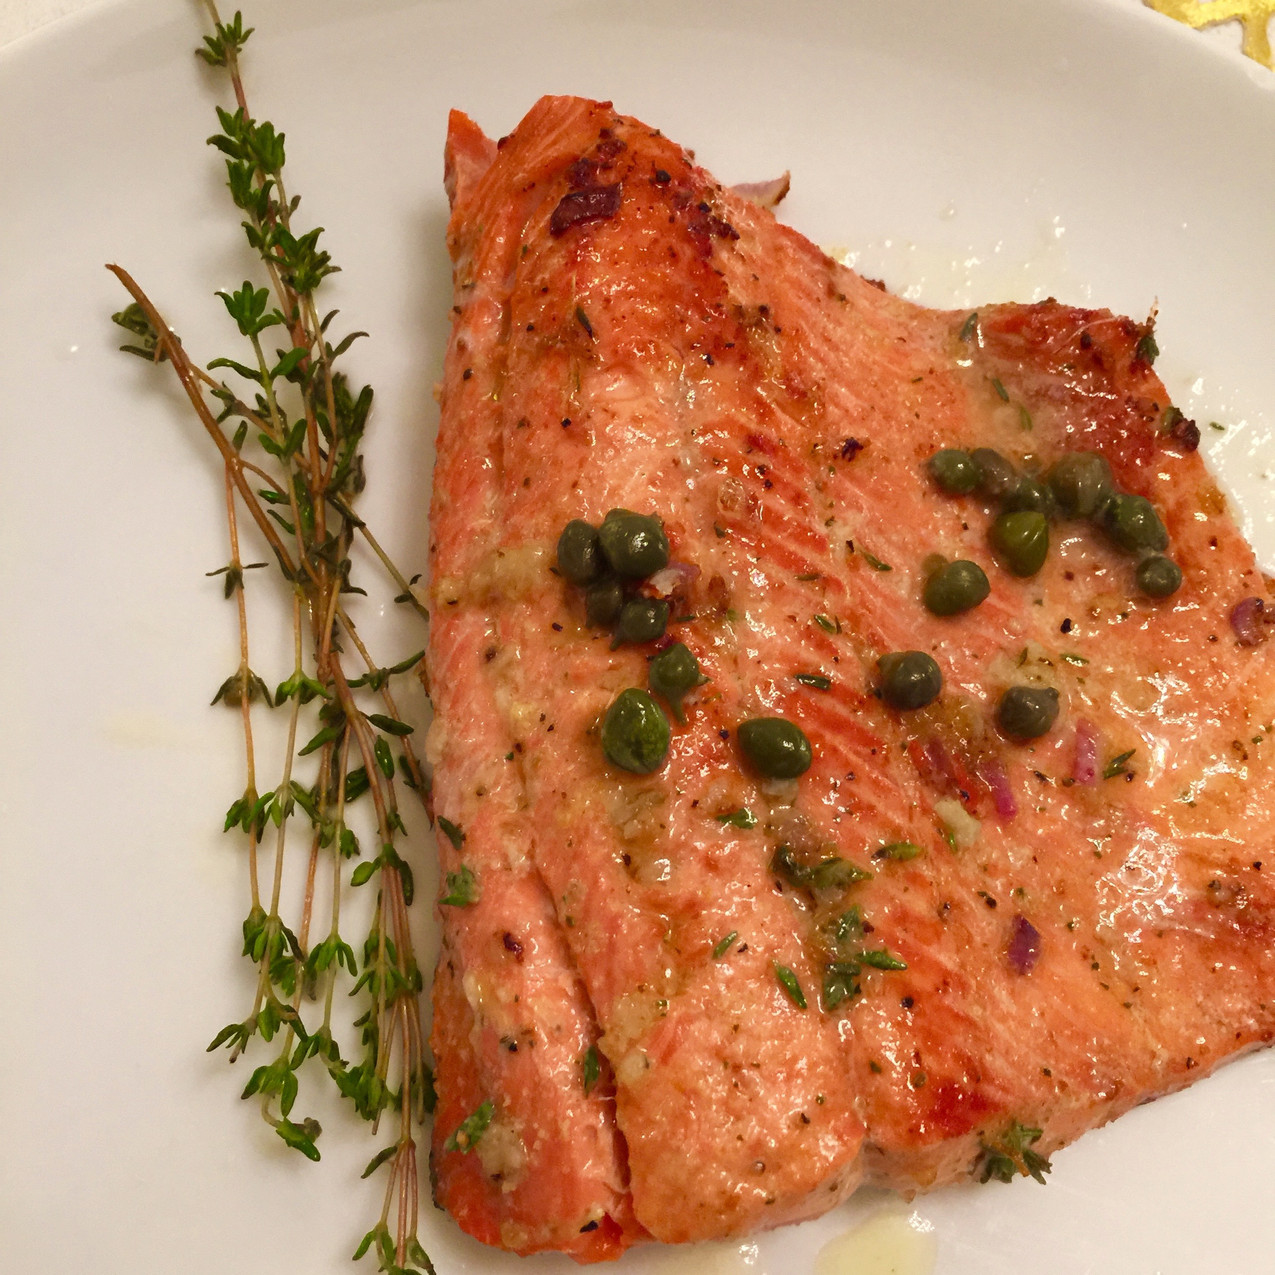 Baked salmon with thyme and capers